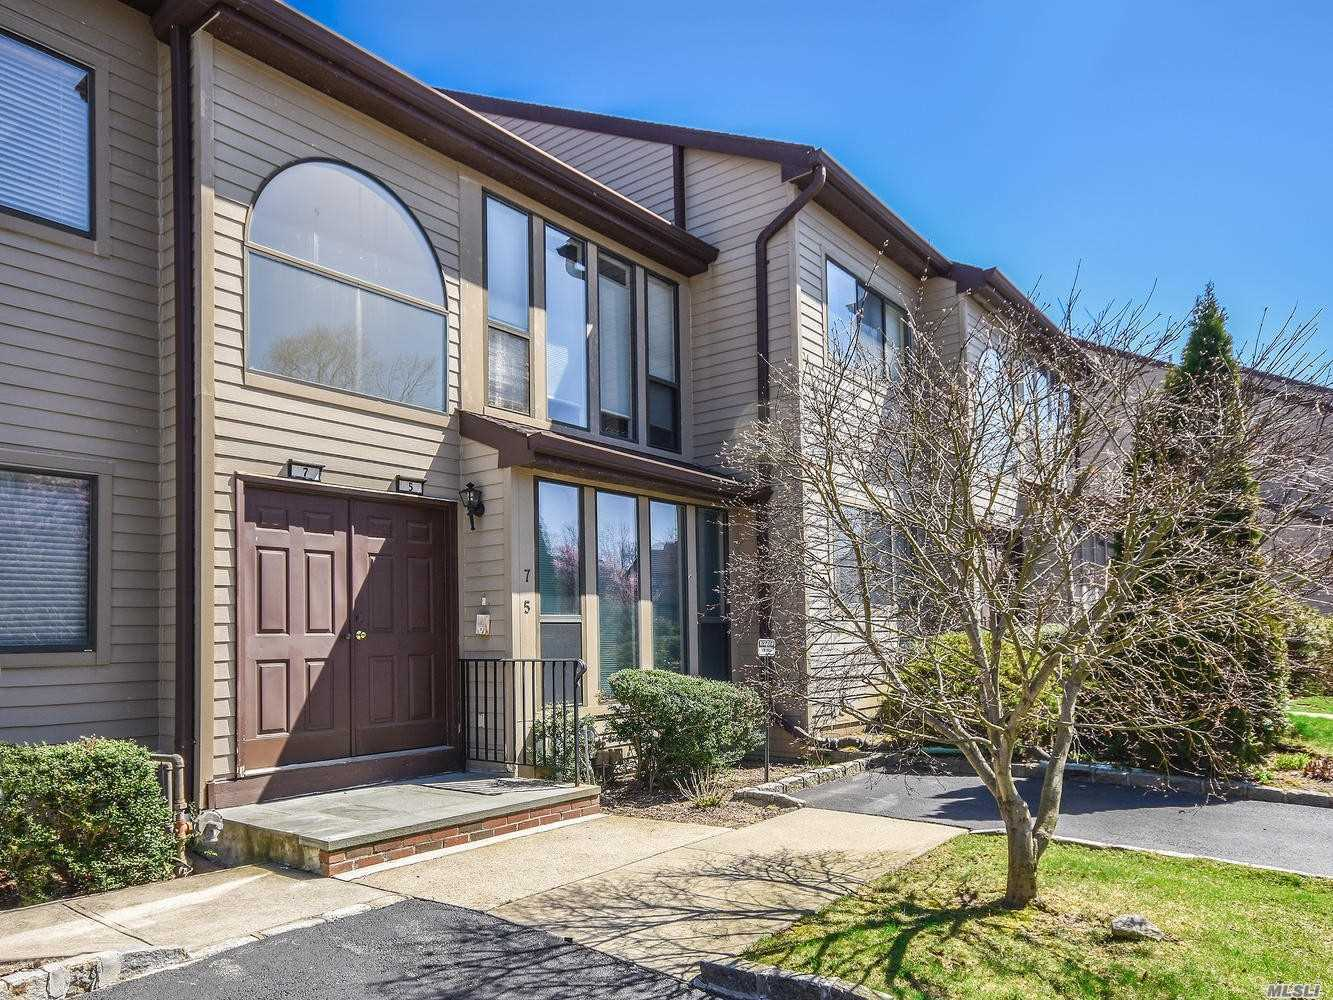 Just In Time! Set In The Knolls Private Community, And Embraced By Nature's Palette, This Neighborhood Was Built On The Former Women's Pga Golf Course. This Main Level Unit Affords A Perfect Lifestyle For Anyone Who Desires Single Floor Living. Planned For Comfort, The Layout Is Open And Spacious And Within Your Reach. Blink, And It Will Be Gone!